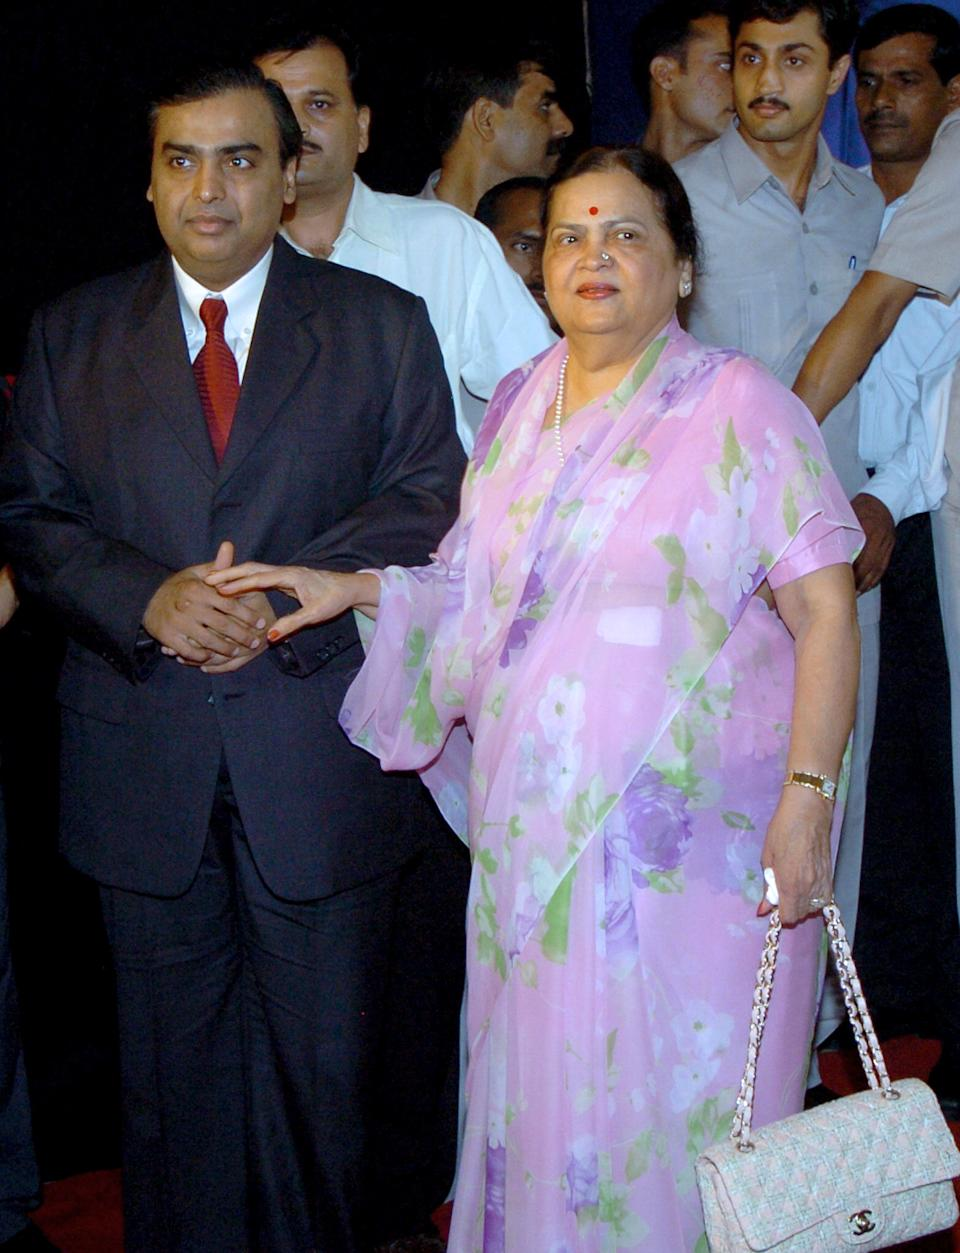 "(FILES) In this picture taken August 3, 2005, Chairman of Reliance Industries Limited Mukesh Ambani (L) is accompanied by his mother Kokilaben as he arrives at the company's 31st Annual General Meeting in Mumbai. An Indian judge has told India's Ambani brothers to get their mother to settle their latest fight over natural gas supplies, telling them it is in the ""national interest,"" a report said on August 22, 2008. The two brothers, listed by Forbes magazine as among the world's six richest men, have been at odds since 2005 over a supply agreement from the Krishna Godavari basin off India's east coast. AFP PHOTO/Indranil MUKHERJEE/FILES"